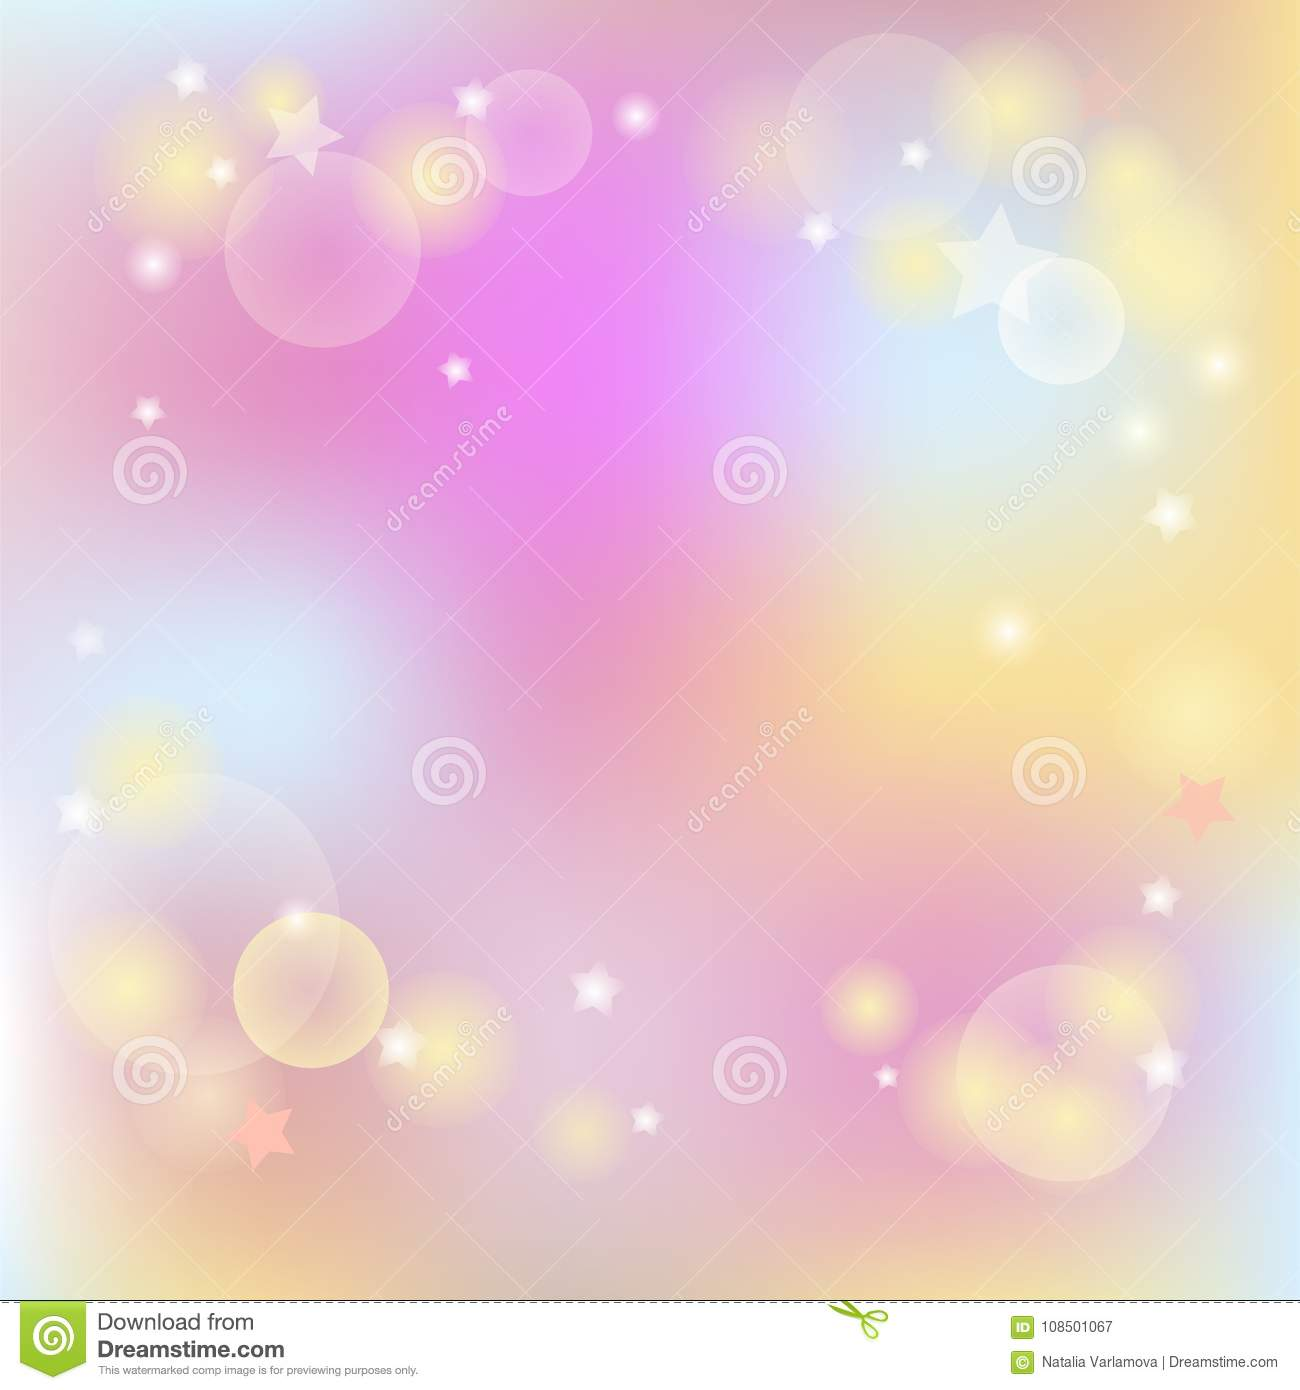 Modern pastel colored background.